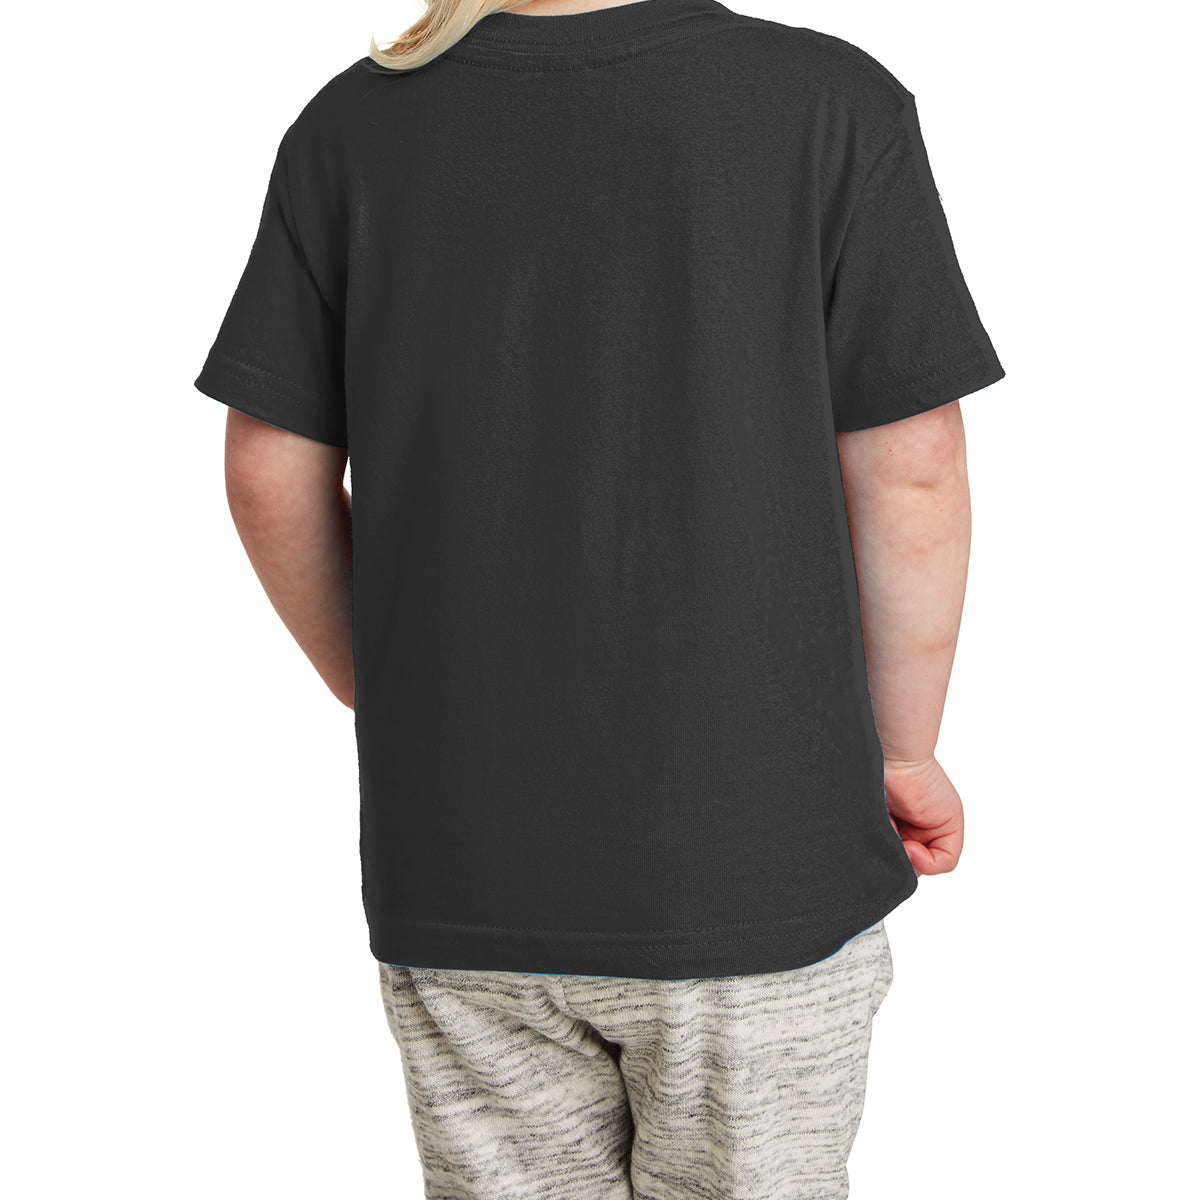 Toddler Fine Jersey Tee - Black